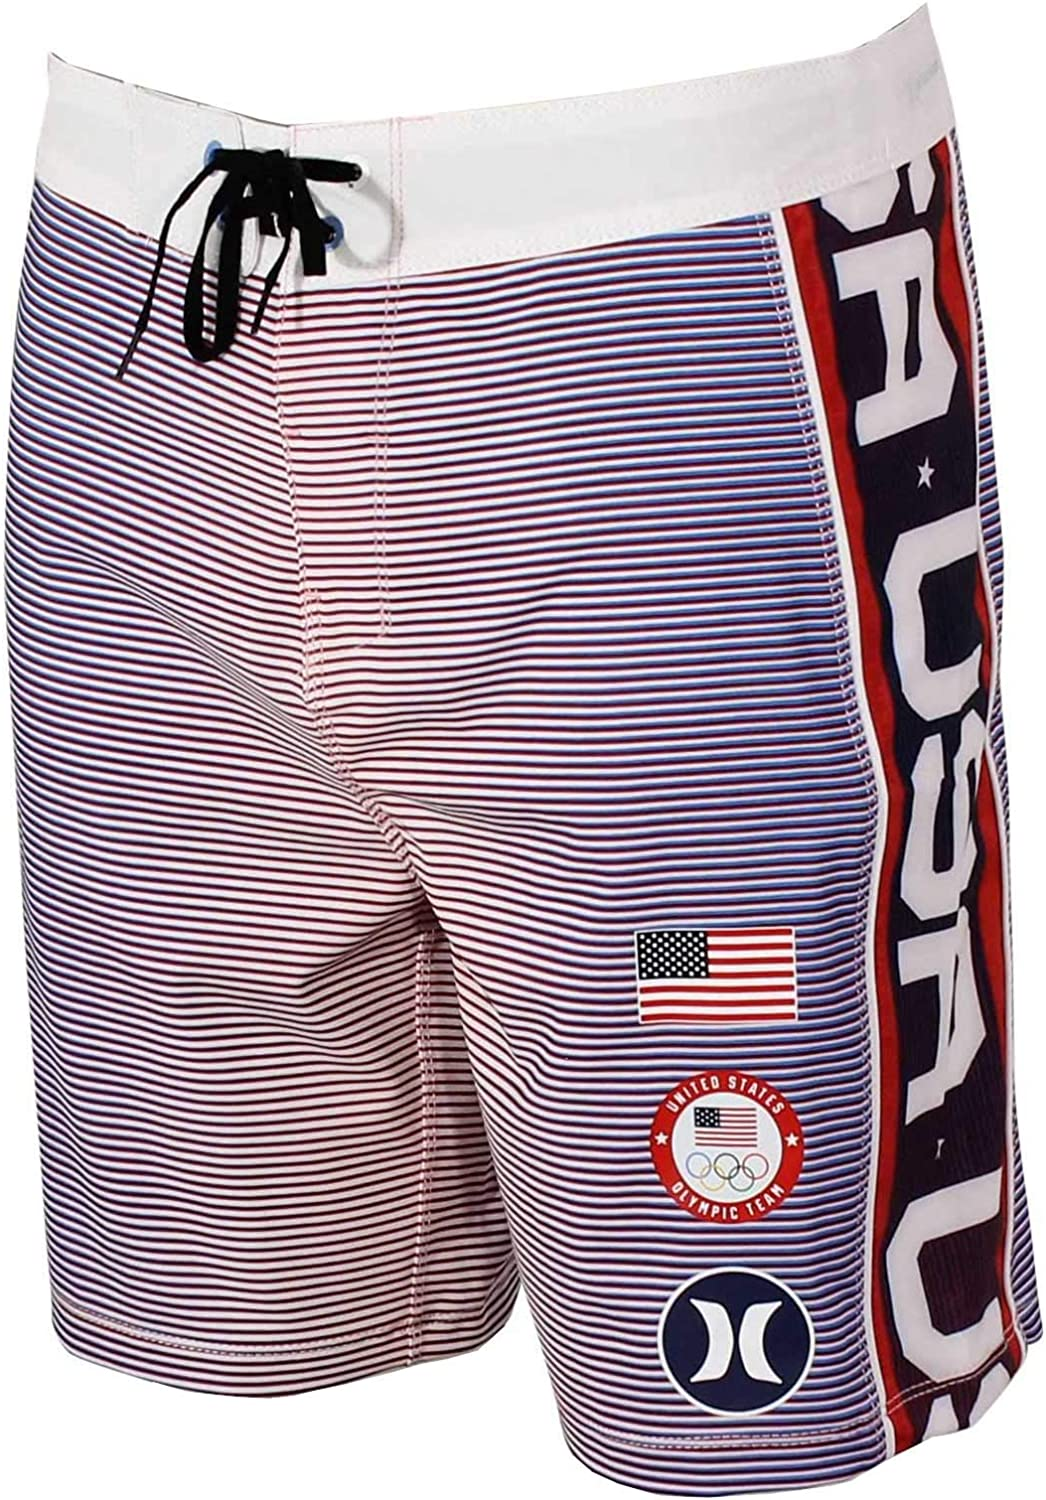 Special price for 2021new shipping free shipping a limited time Hurley Phantom Fastlane USA Boardshorts 18